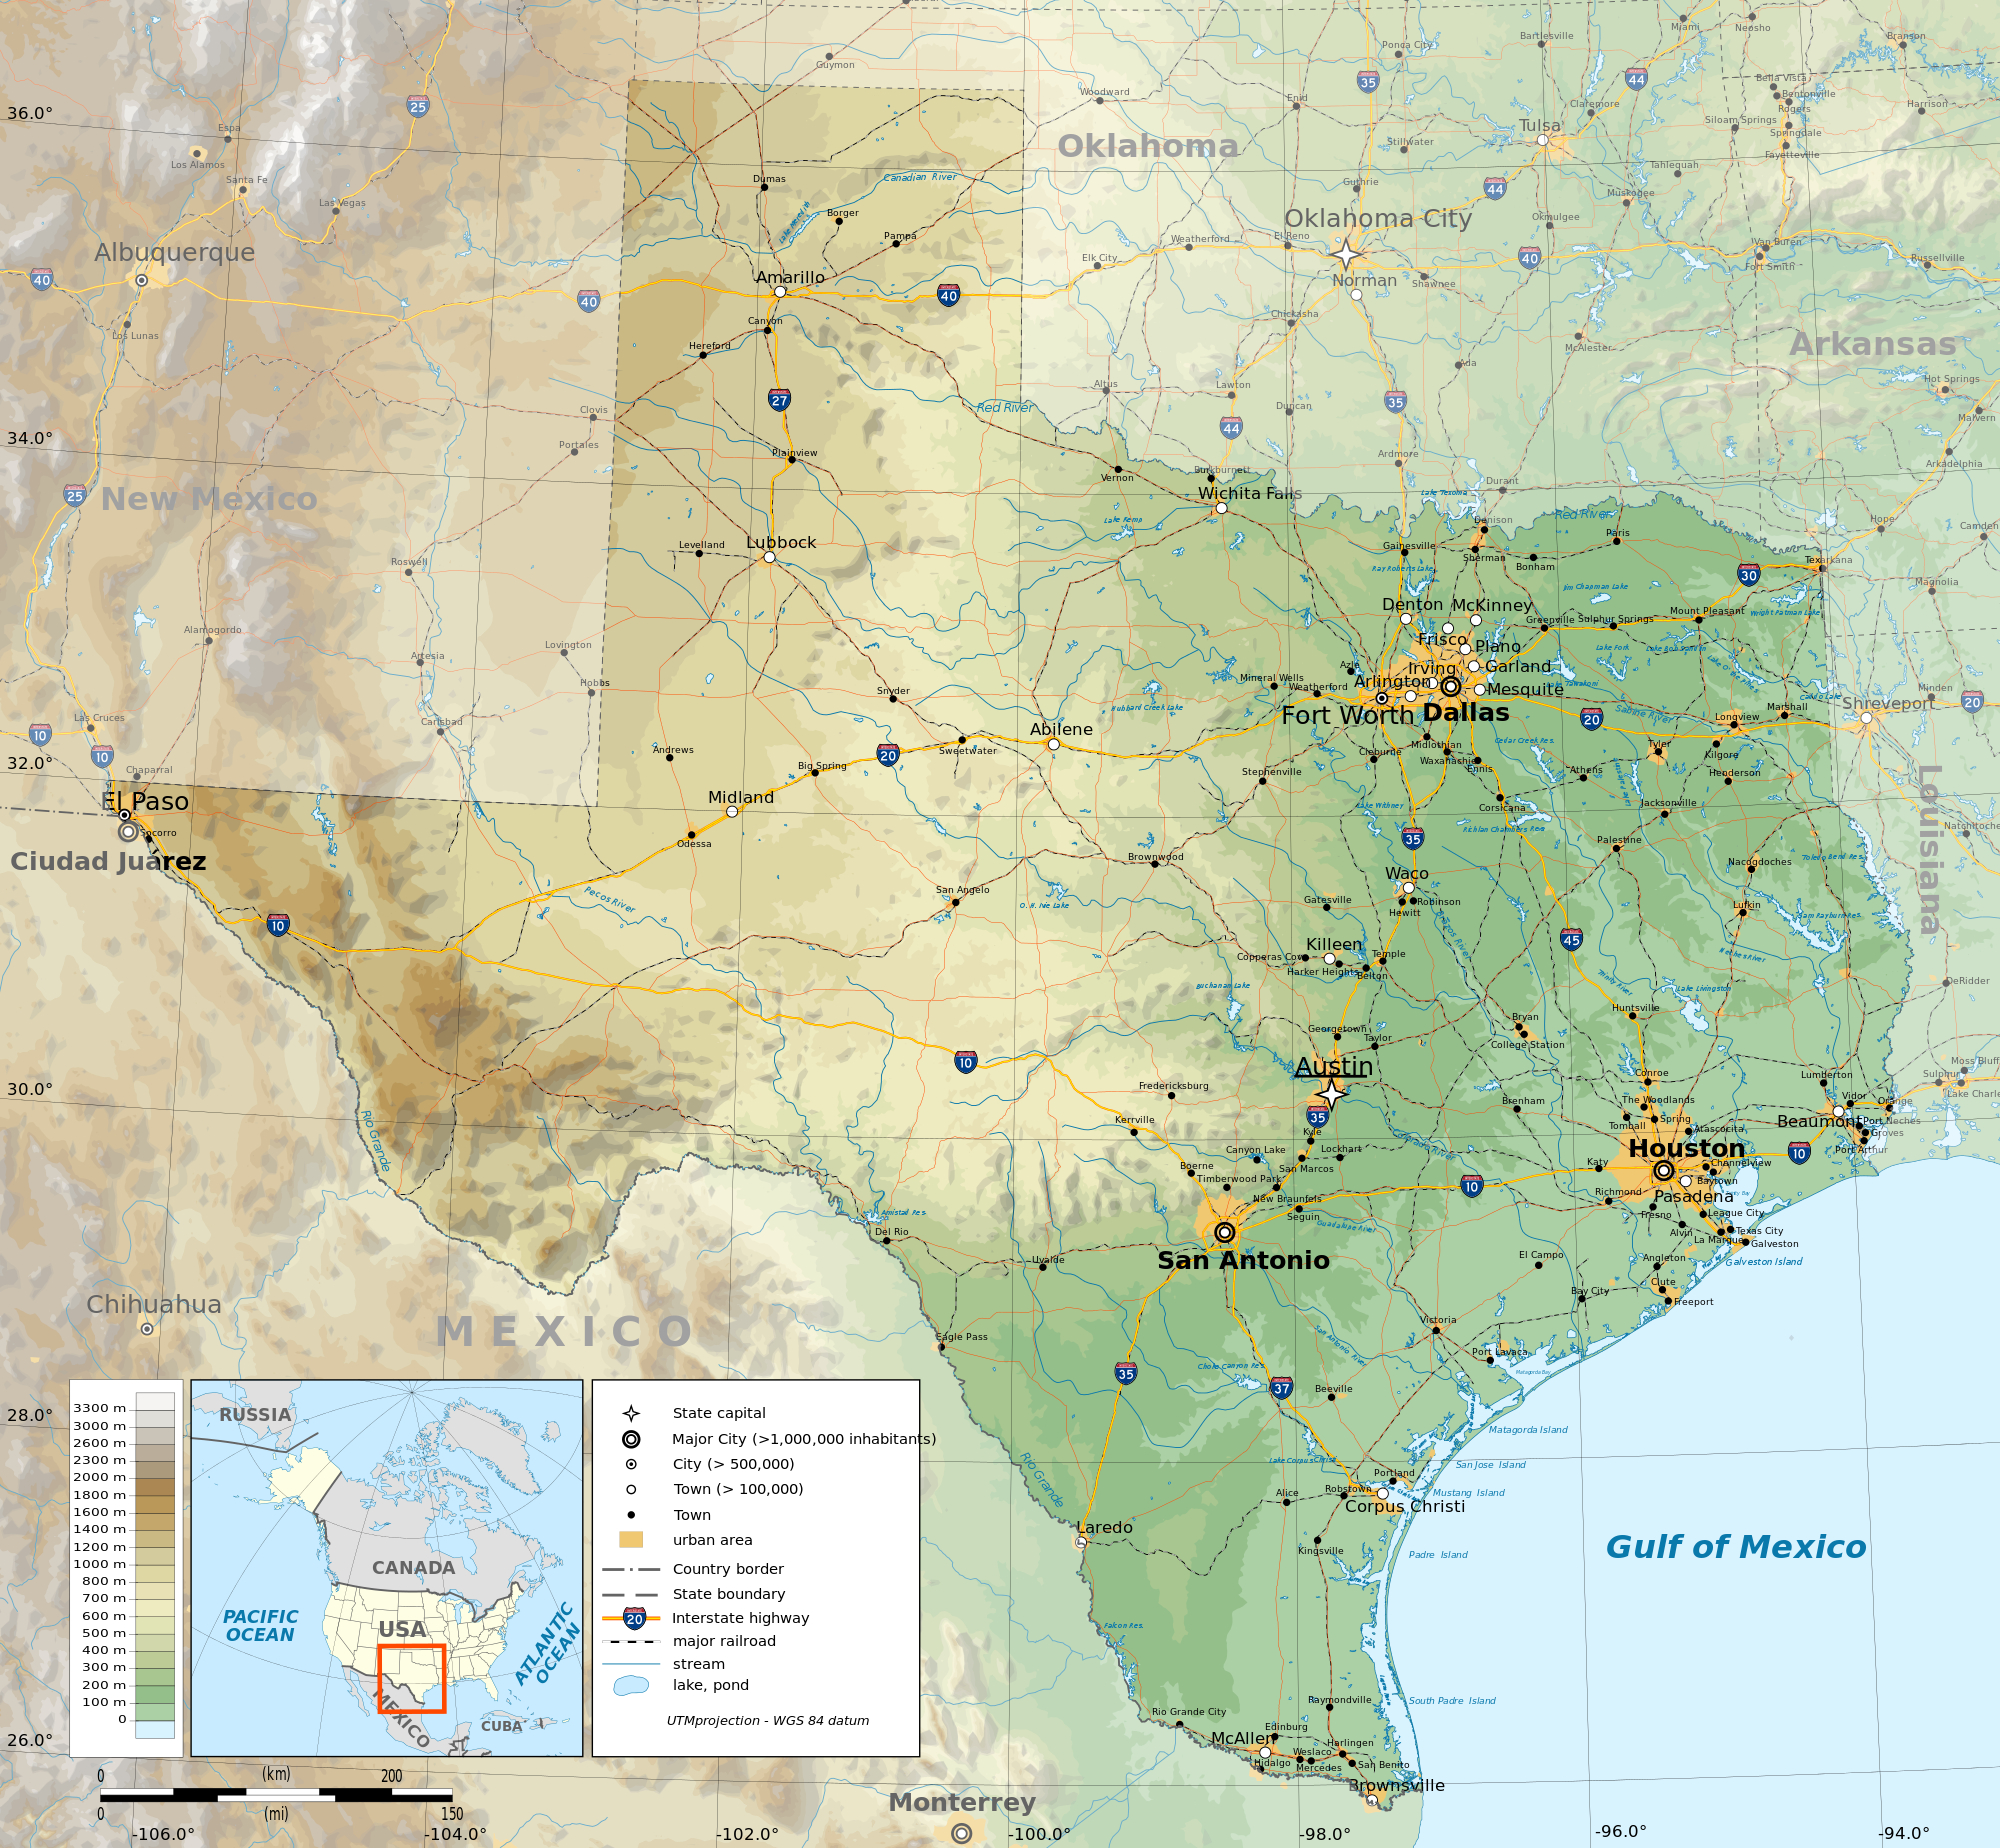 Topographic Map Of Texas   Business Ideas 2013 - Texas Elevation Map By County